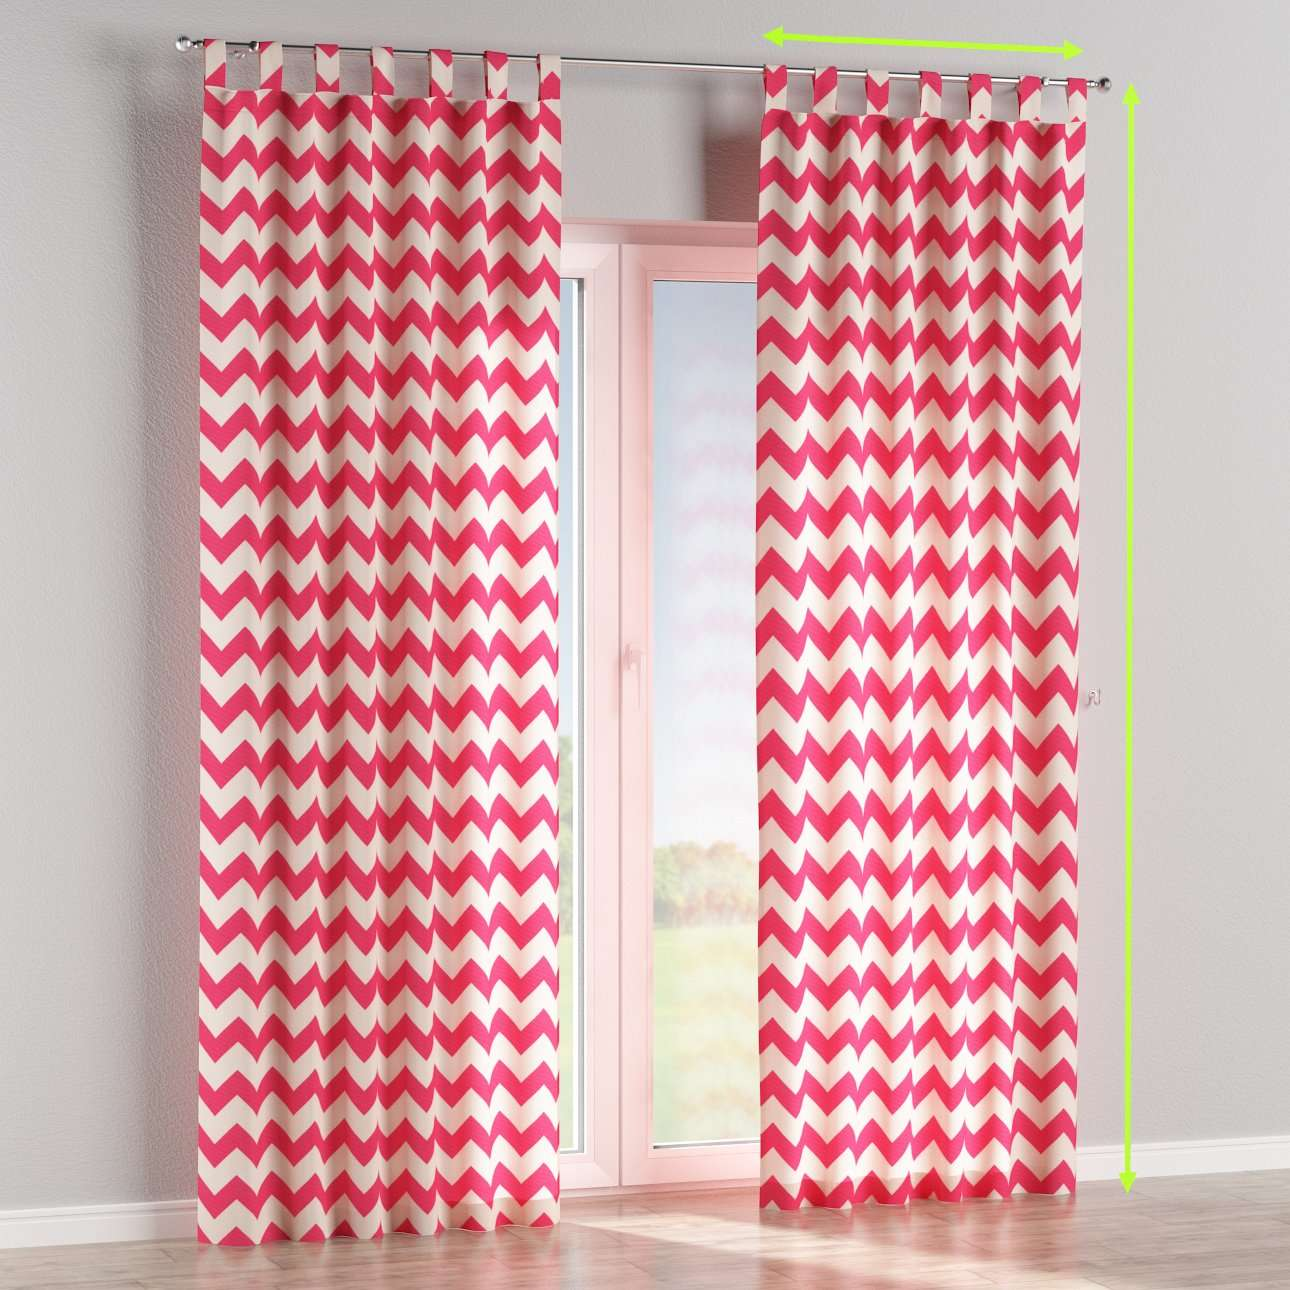 Tab top lined curtains in collection Comics/Geometrical, fabric: 135-00